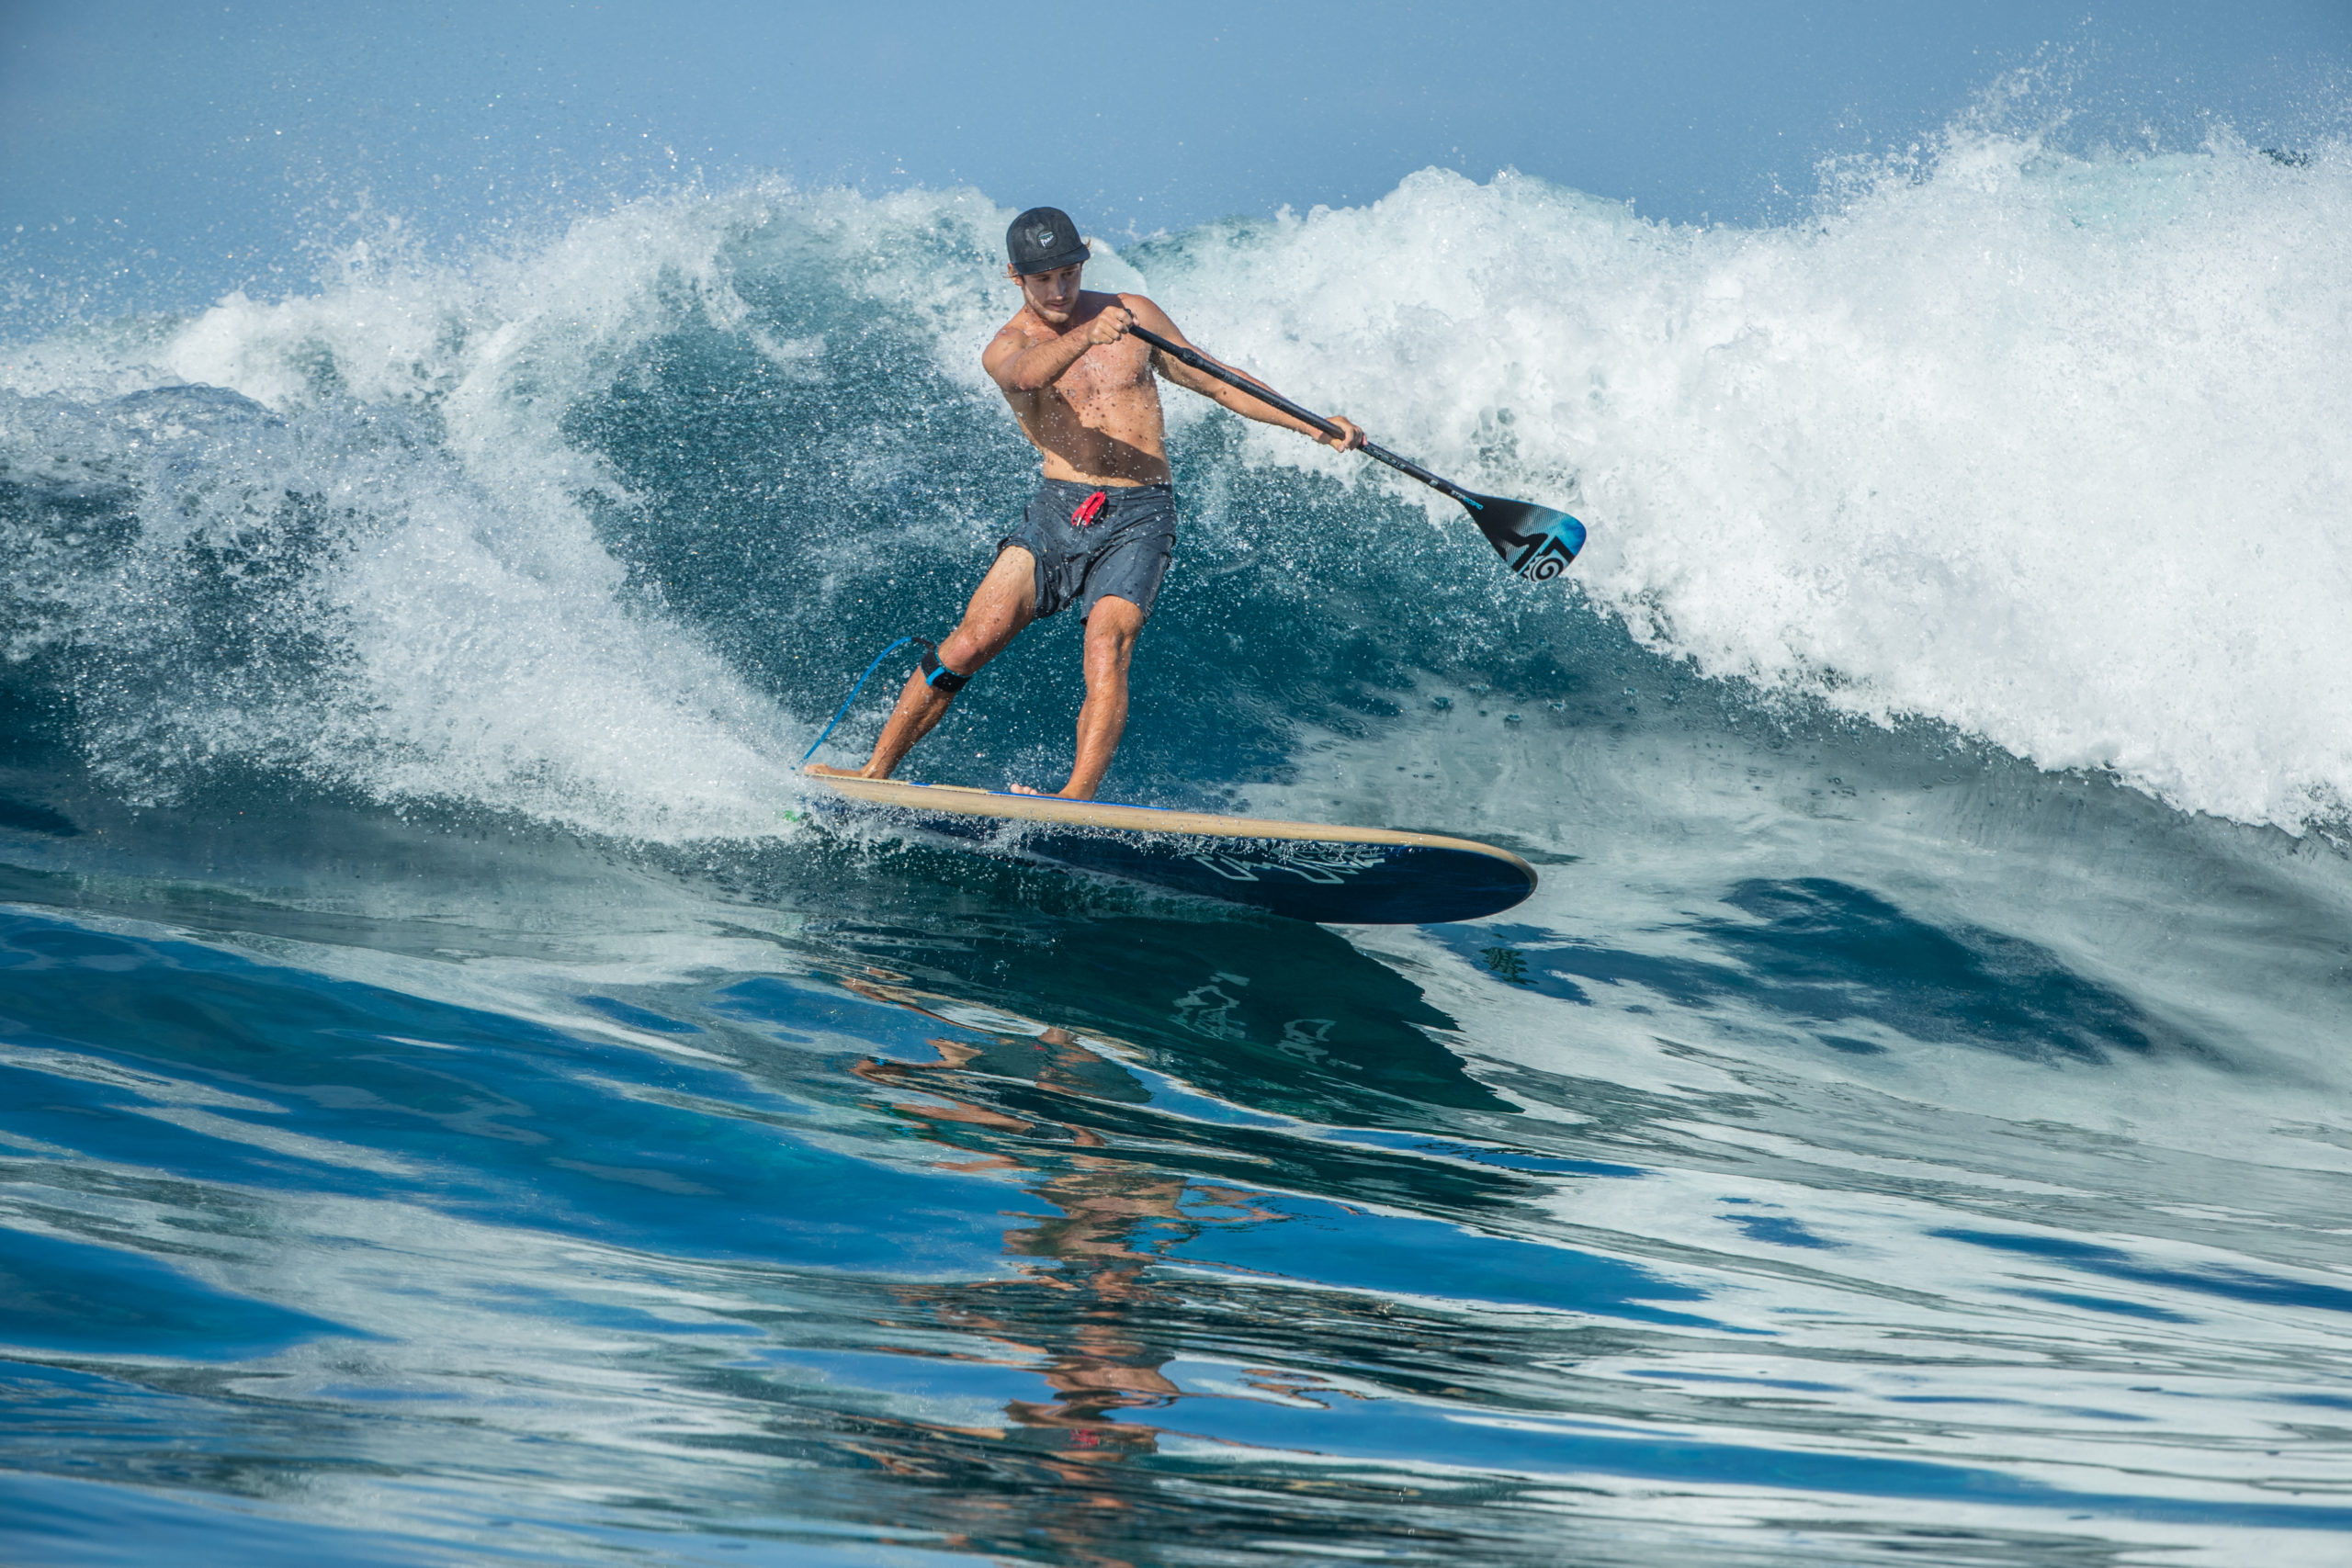 Sygma-sup-school- benoit-Carpentier-sup-surf-camp-supcamp-standuppaddle-stand-up-paddle-book-holiday-portugal-masterclass-worldchampion (5)